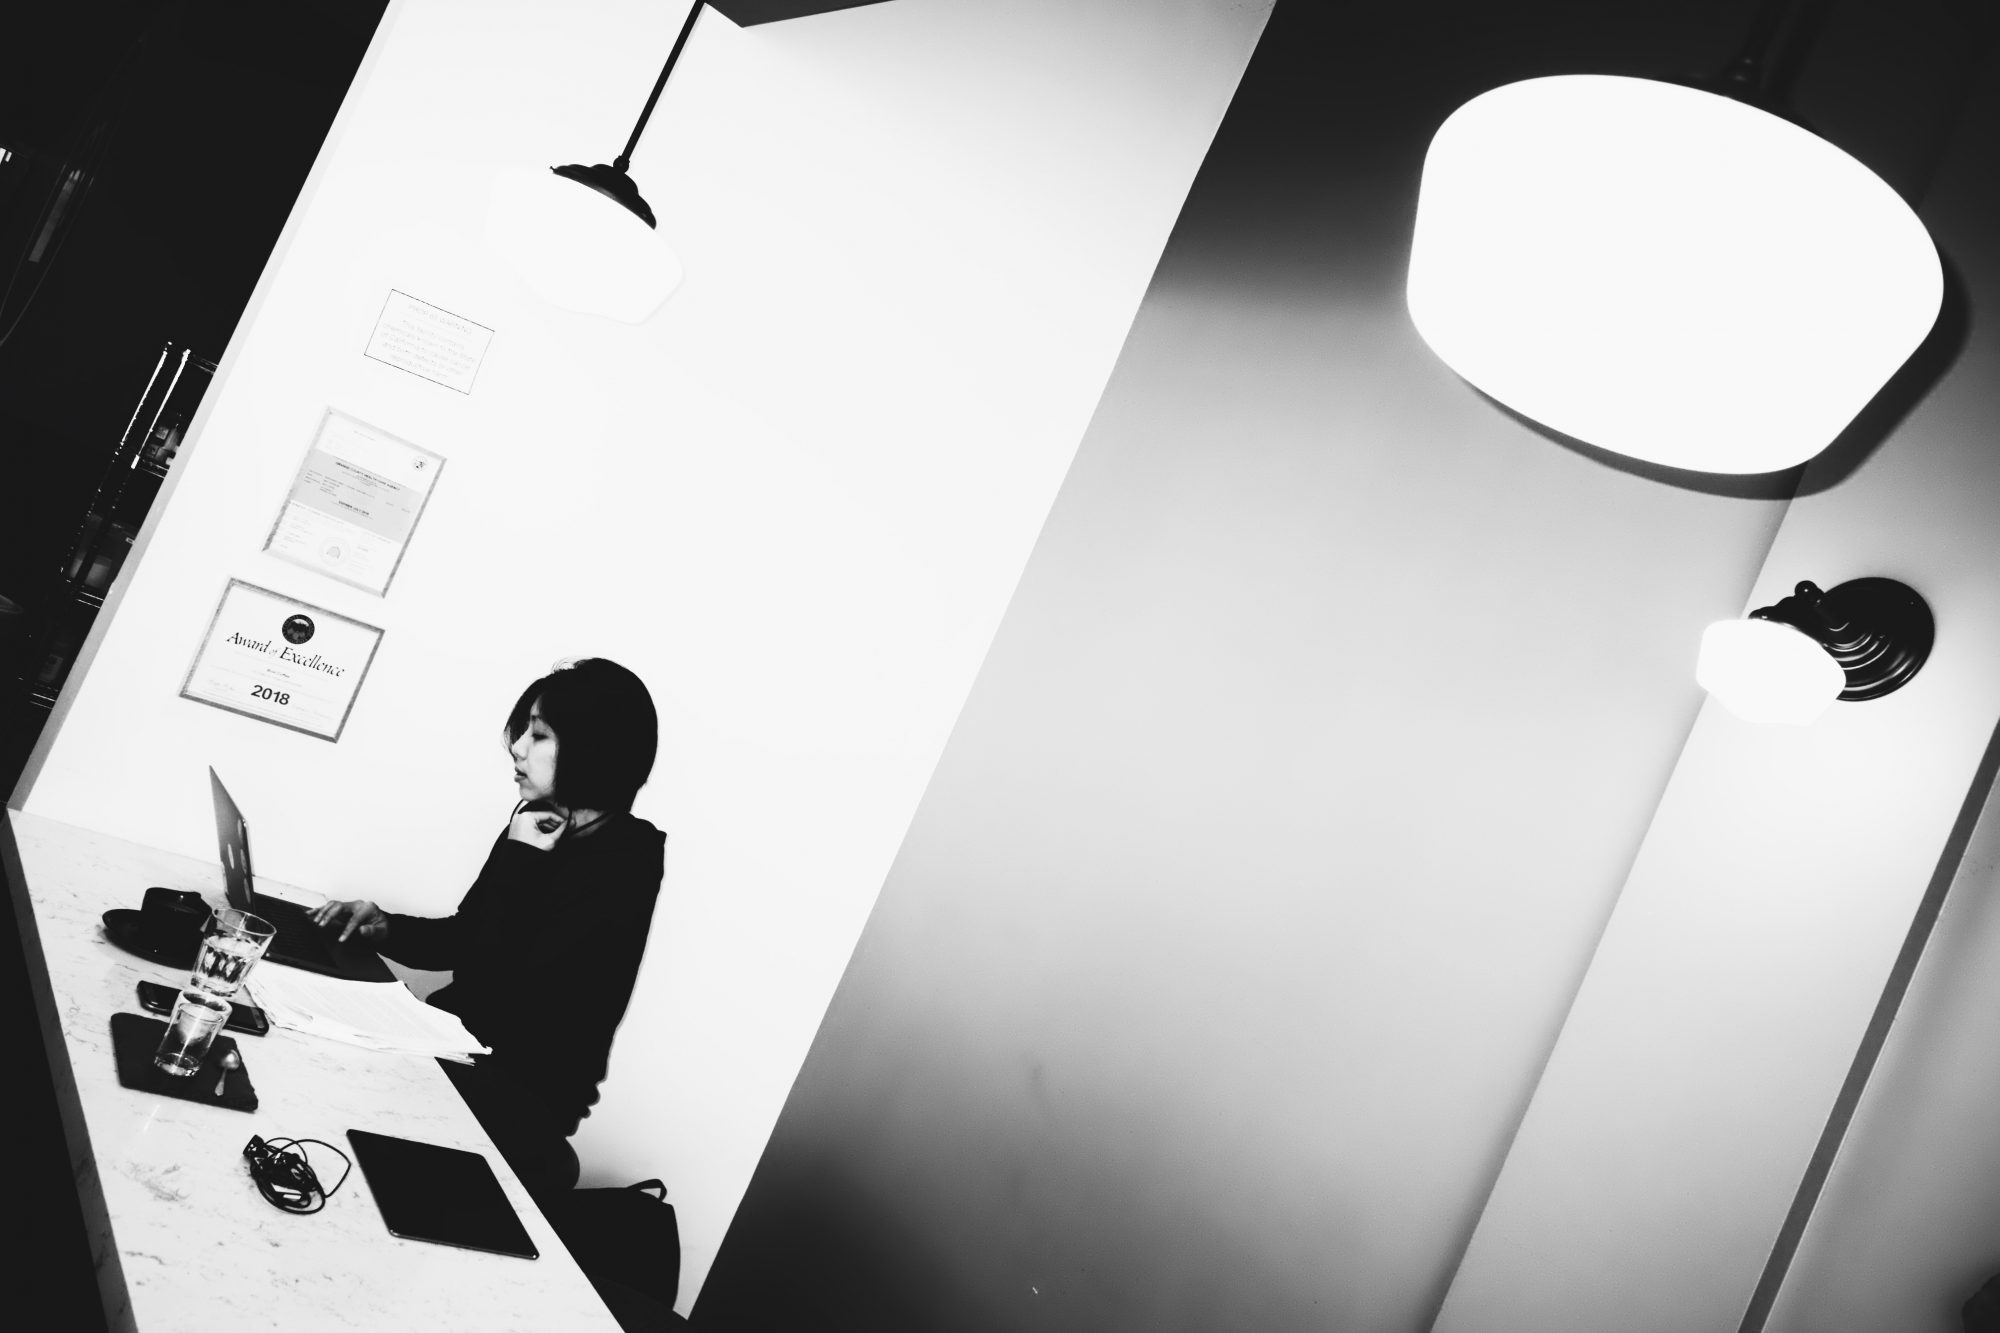 Processed with VSCO with x1 preset. Cindy in coffee shop. Processed XF10 raw photo.